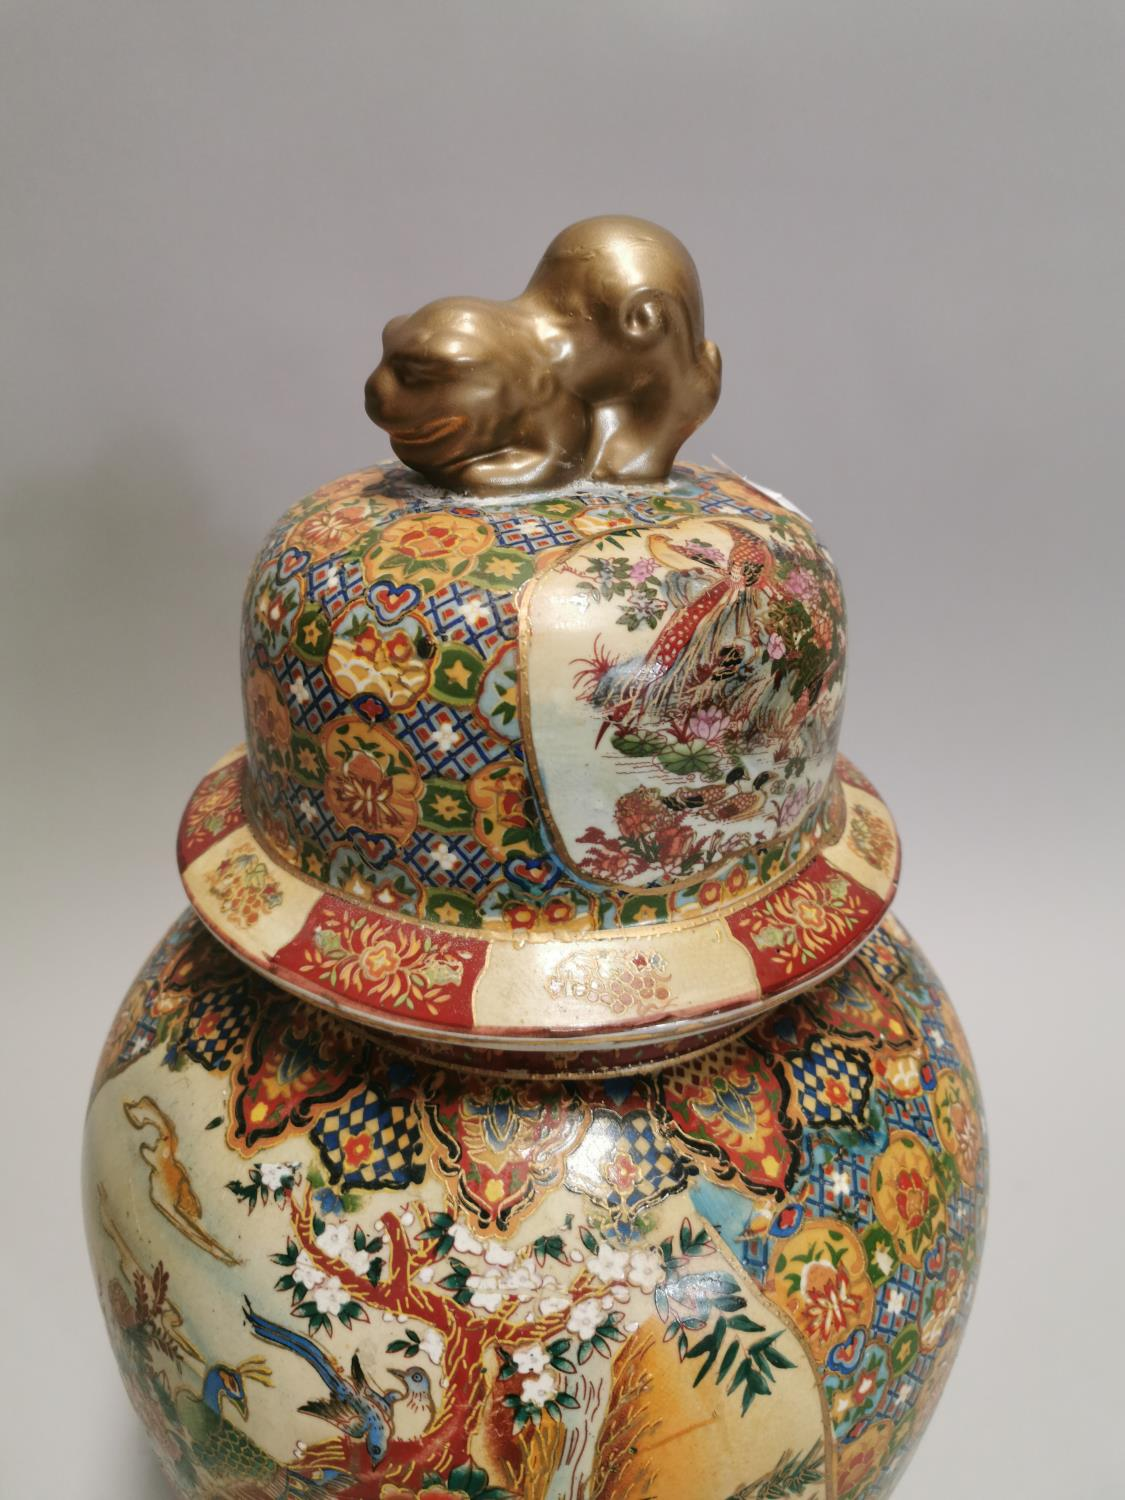 Ceramic lidded vase in the Cantonese style. - Image 5 of 7